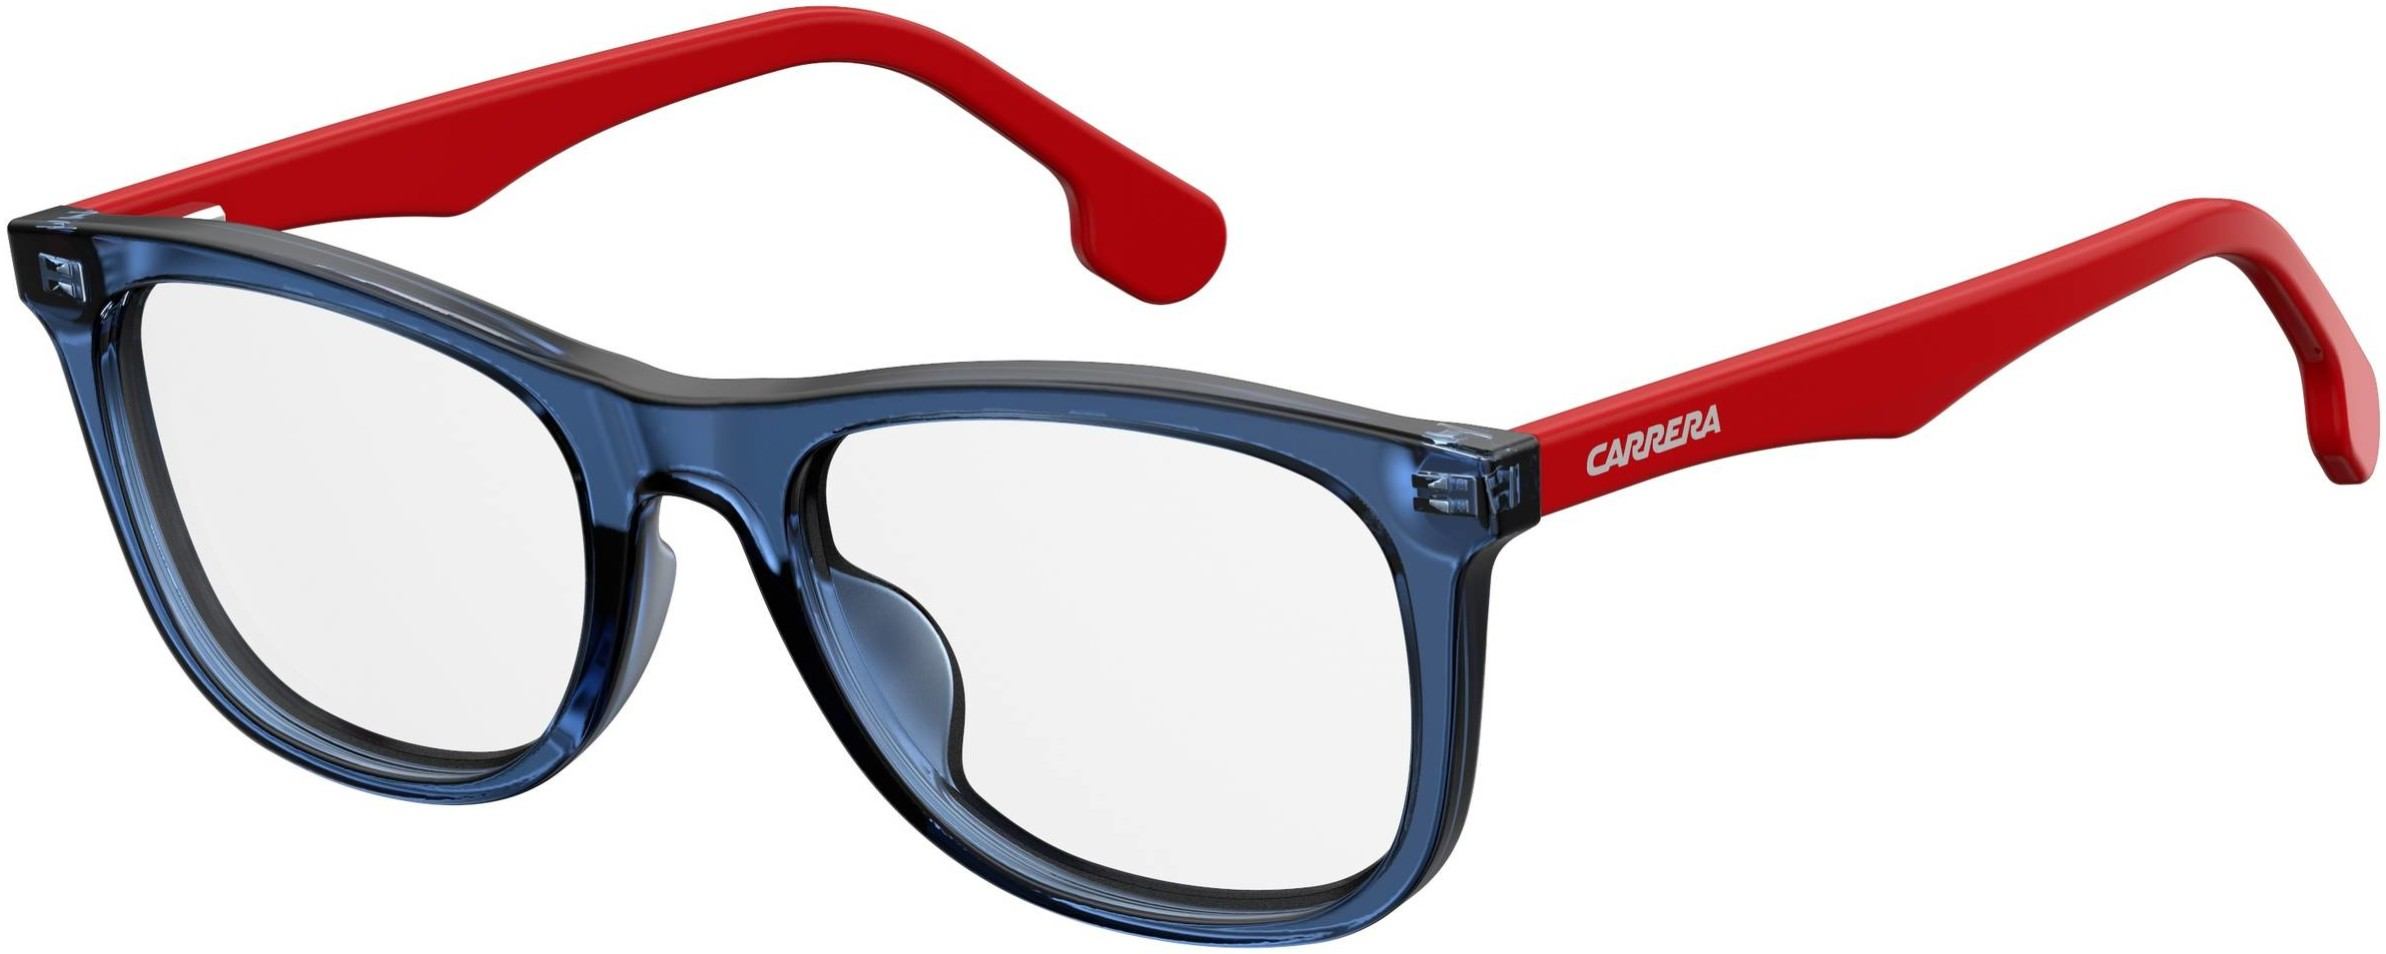 Carrera red and blue for kids